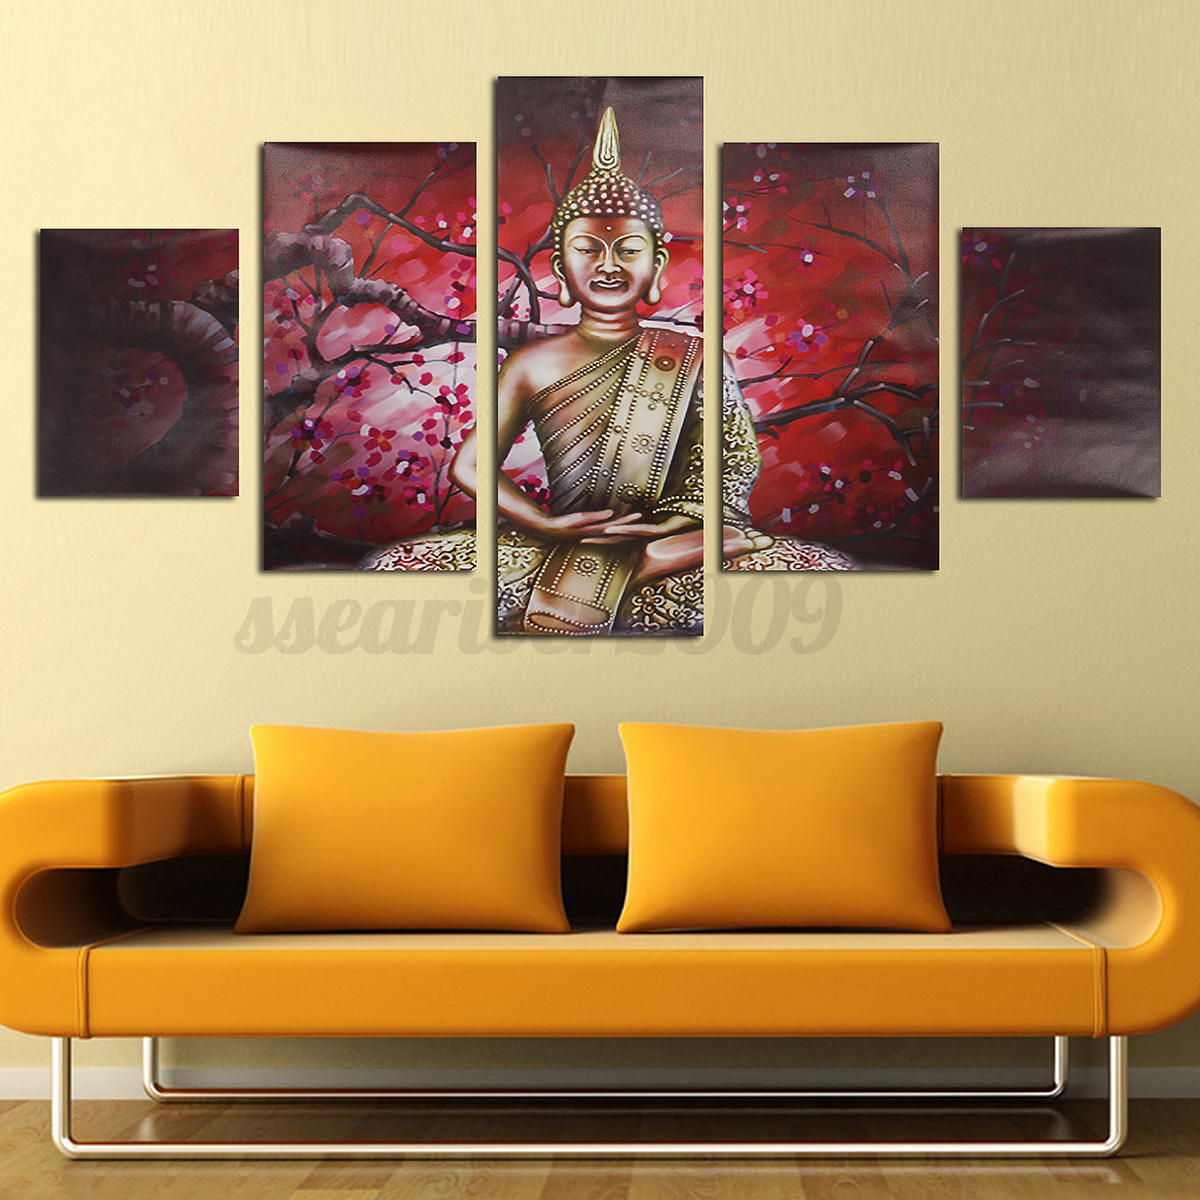 Modern Wall Frame Decor : Pcs modern abstract canvas painting print picture wall